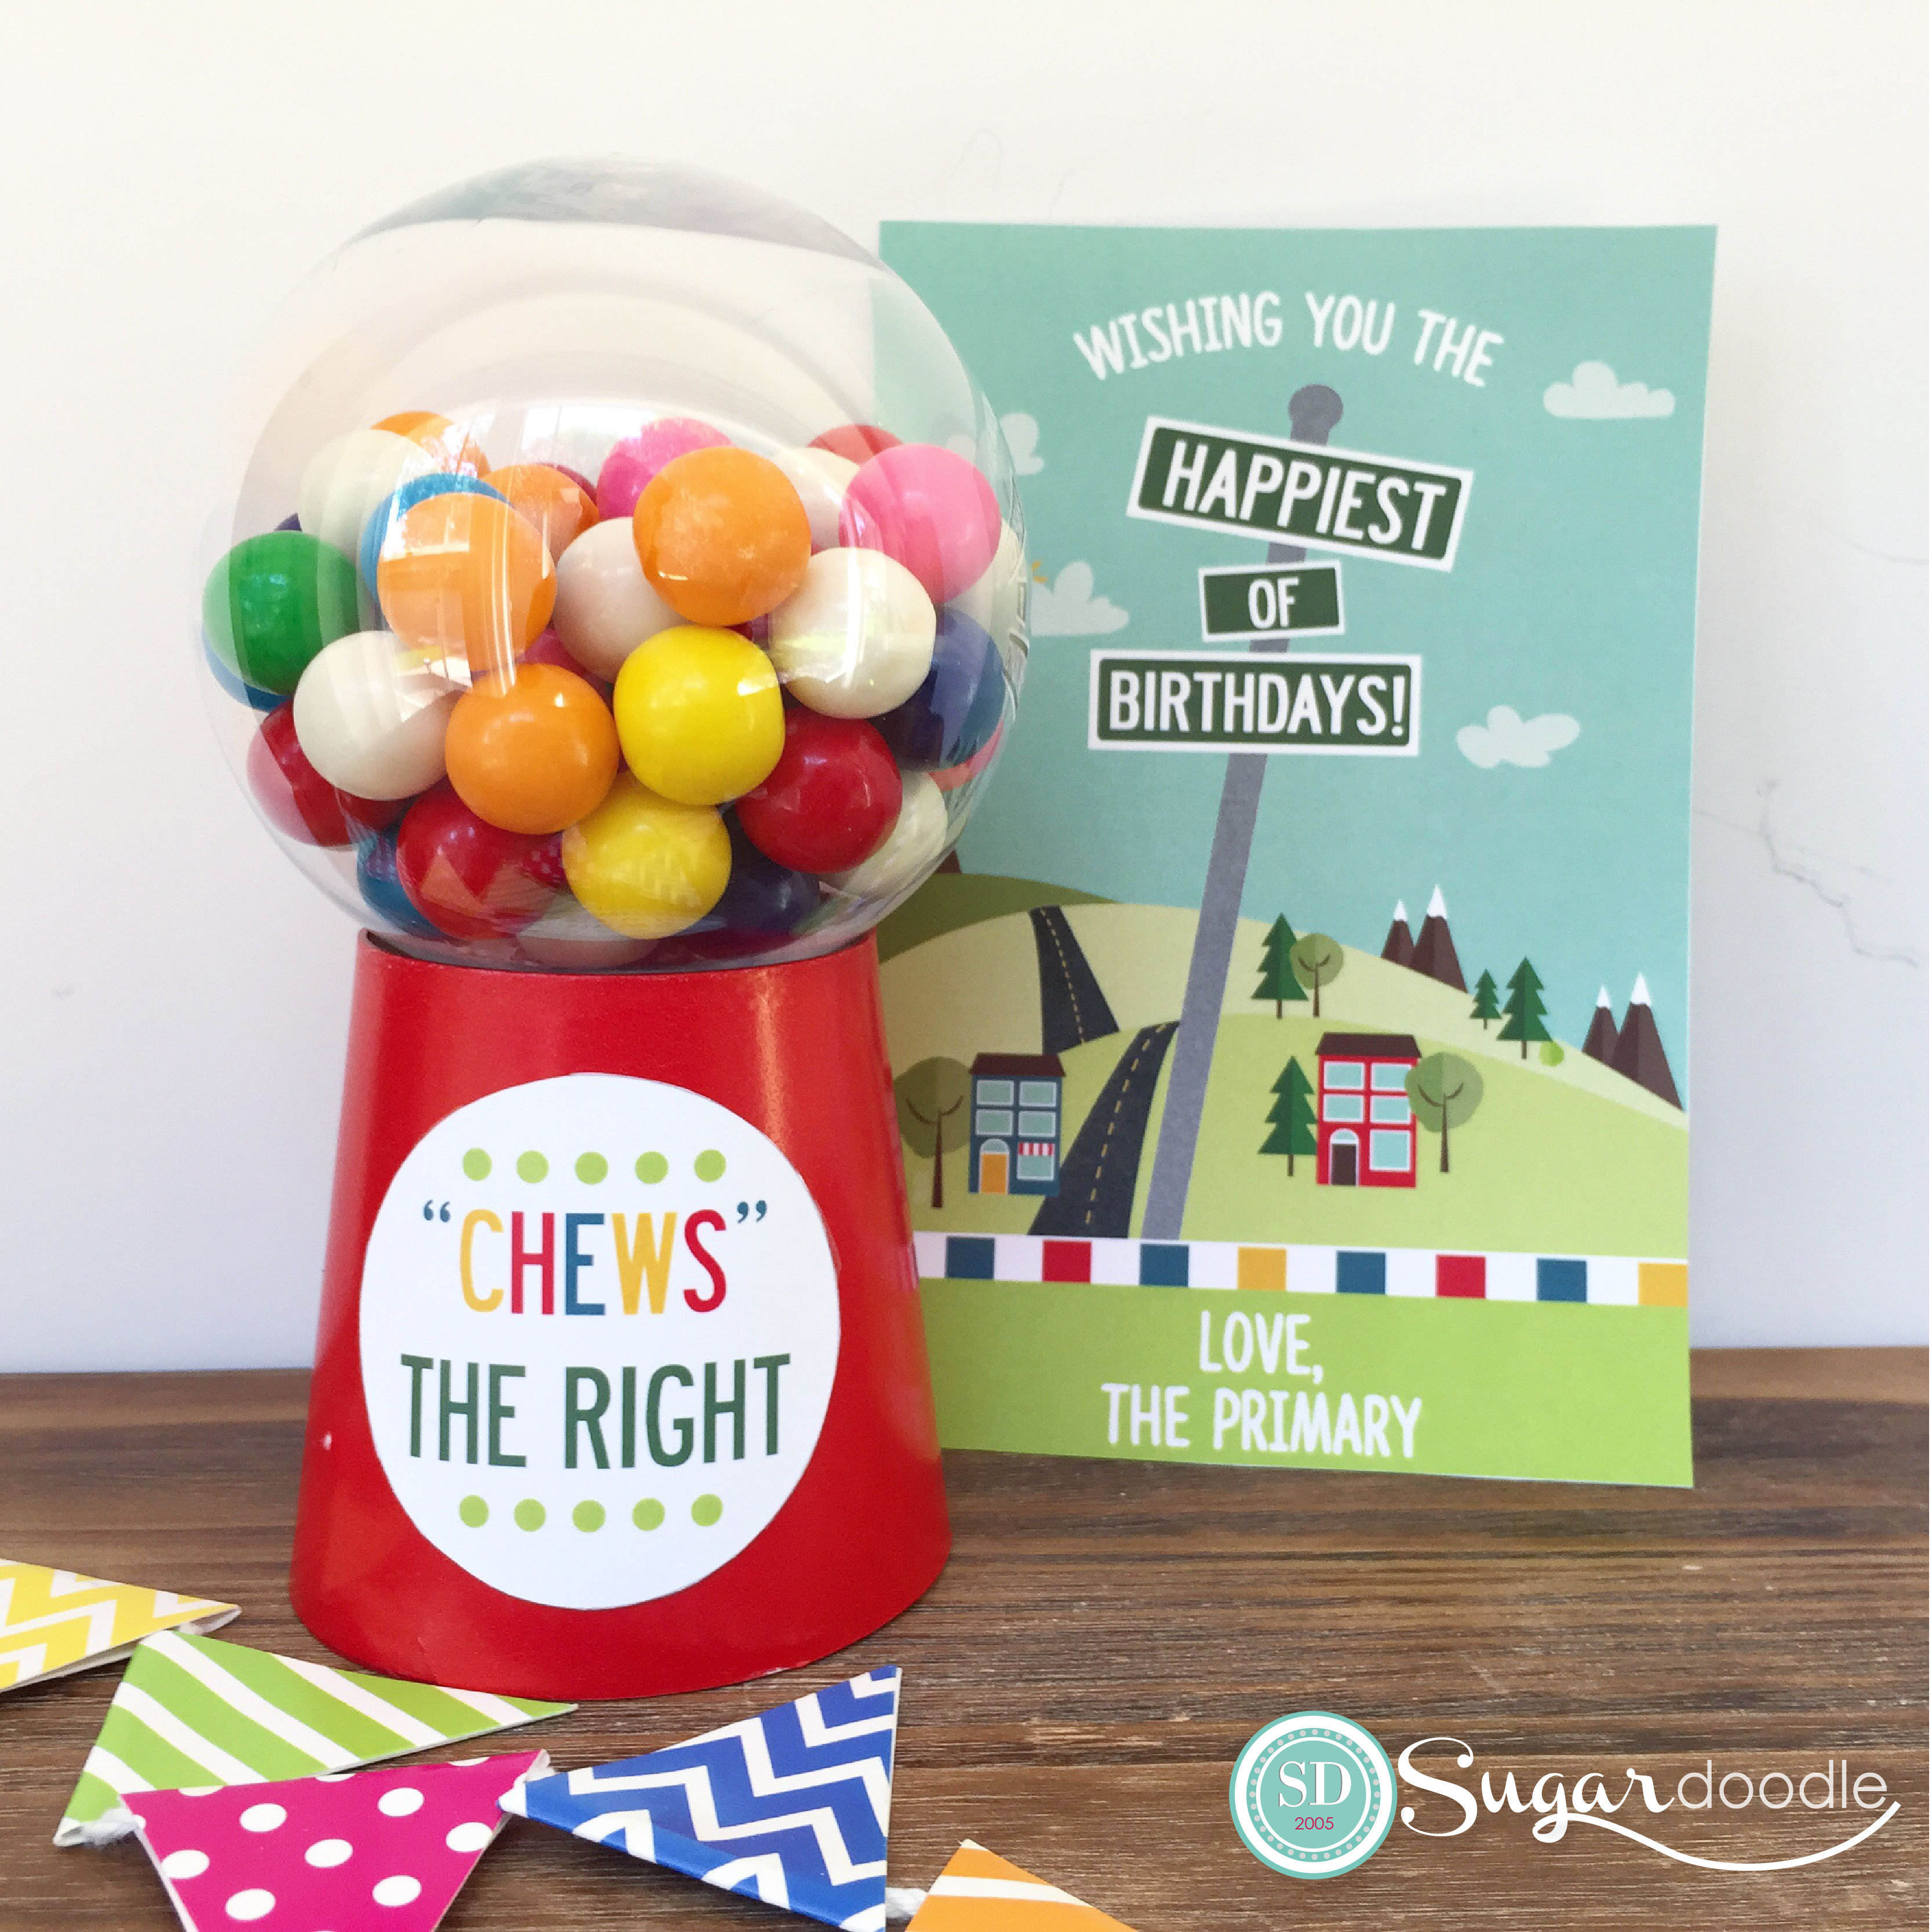 2017 Primary Birthday And Gift Ideas Sugardoodle Net